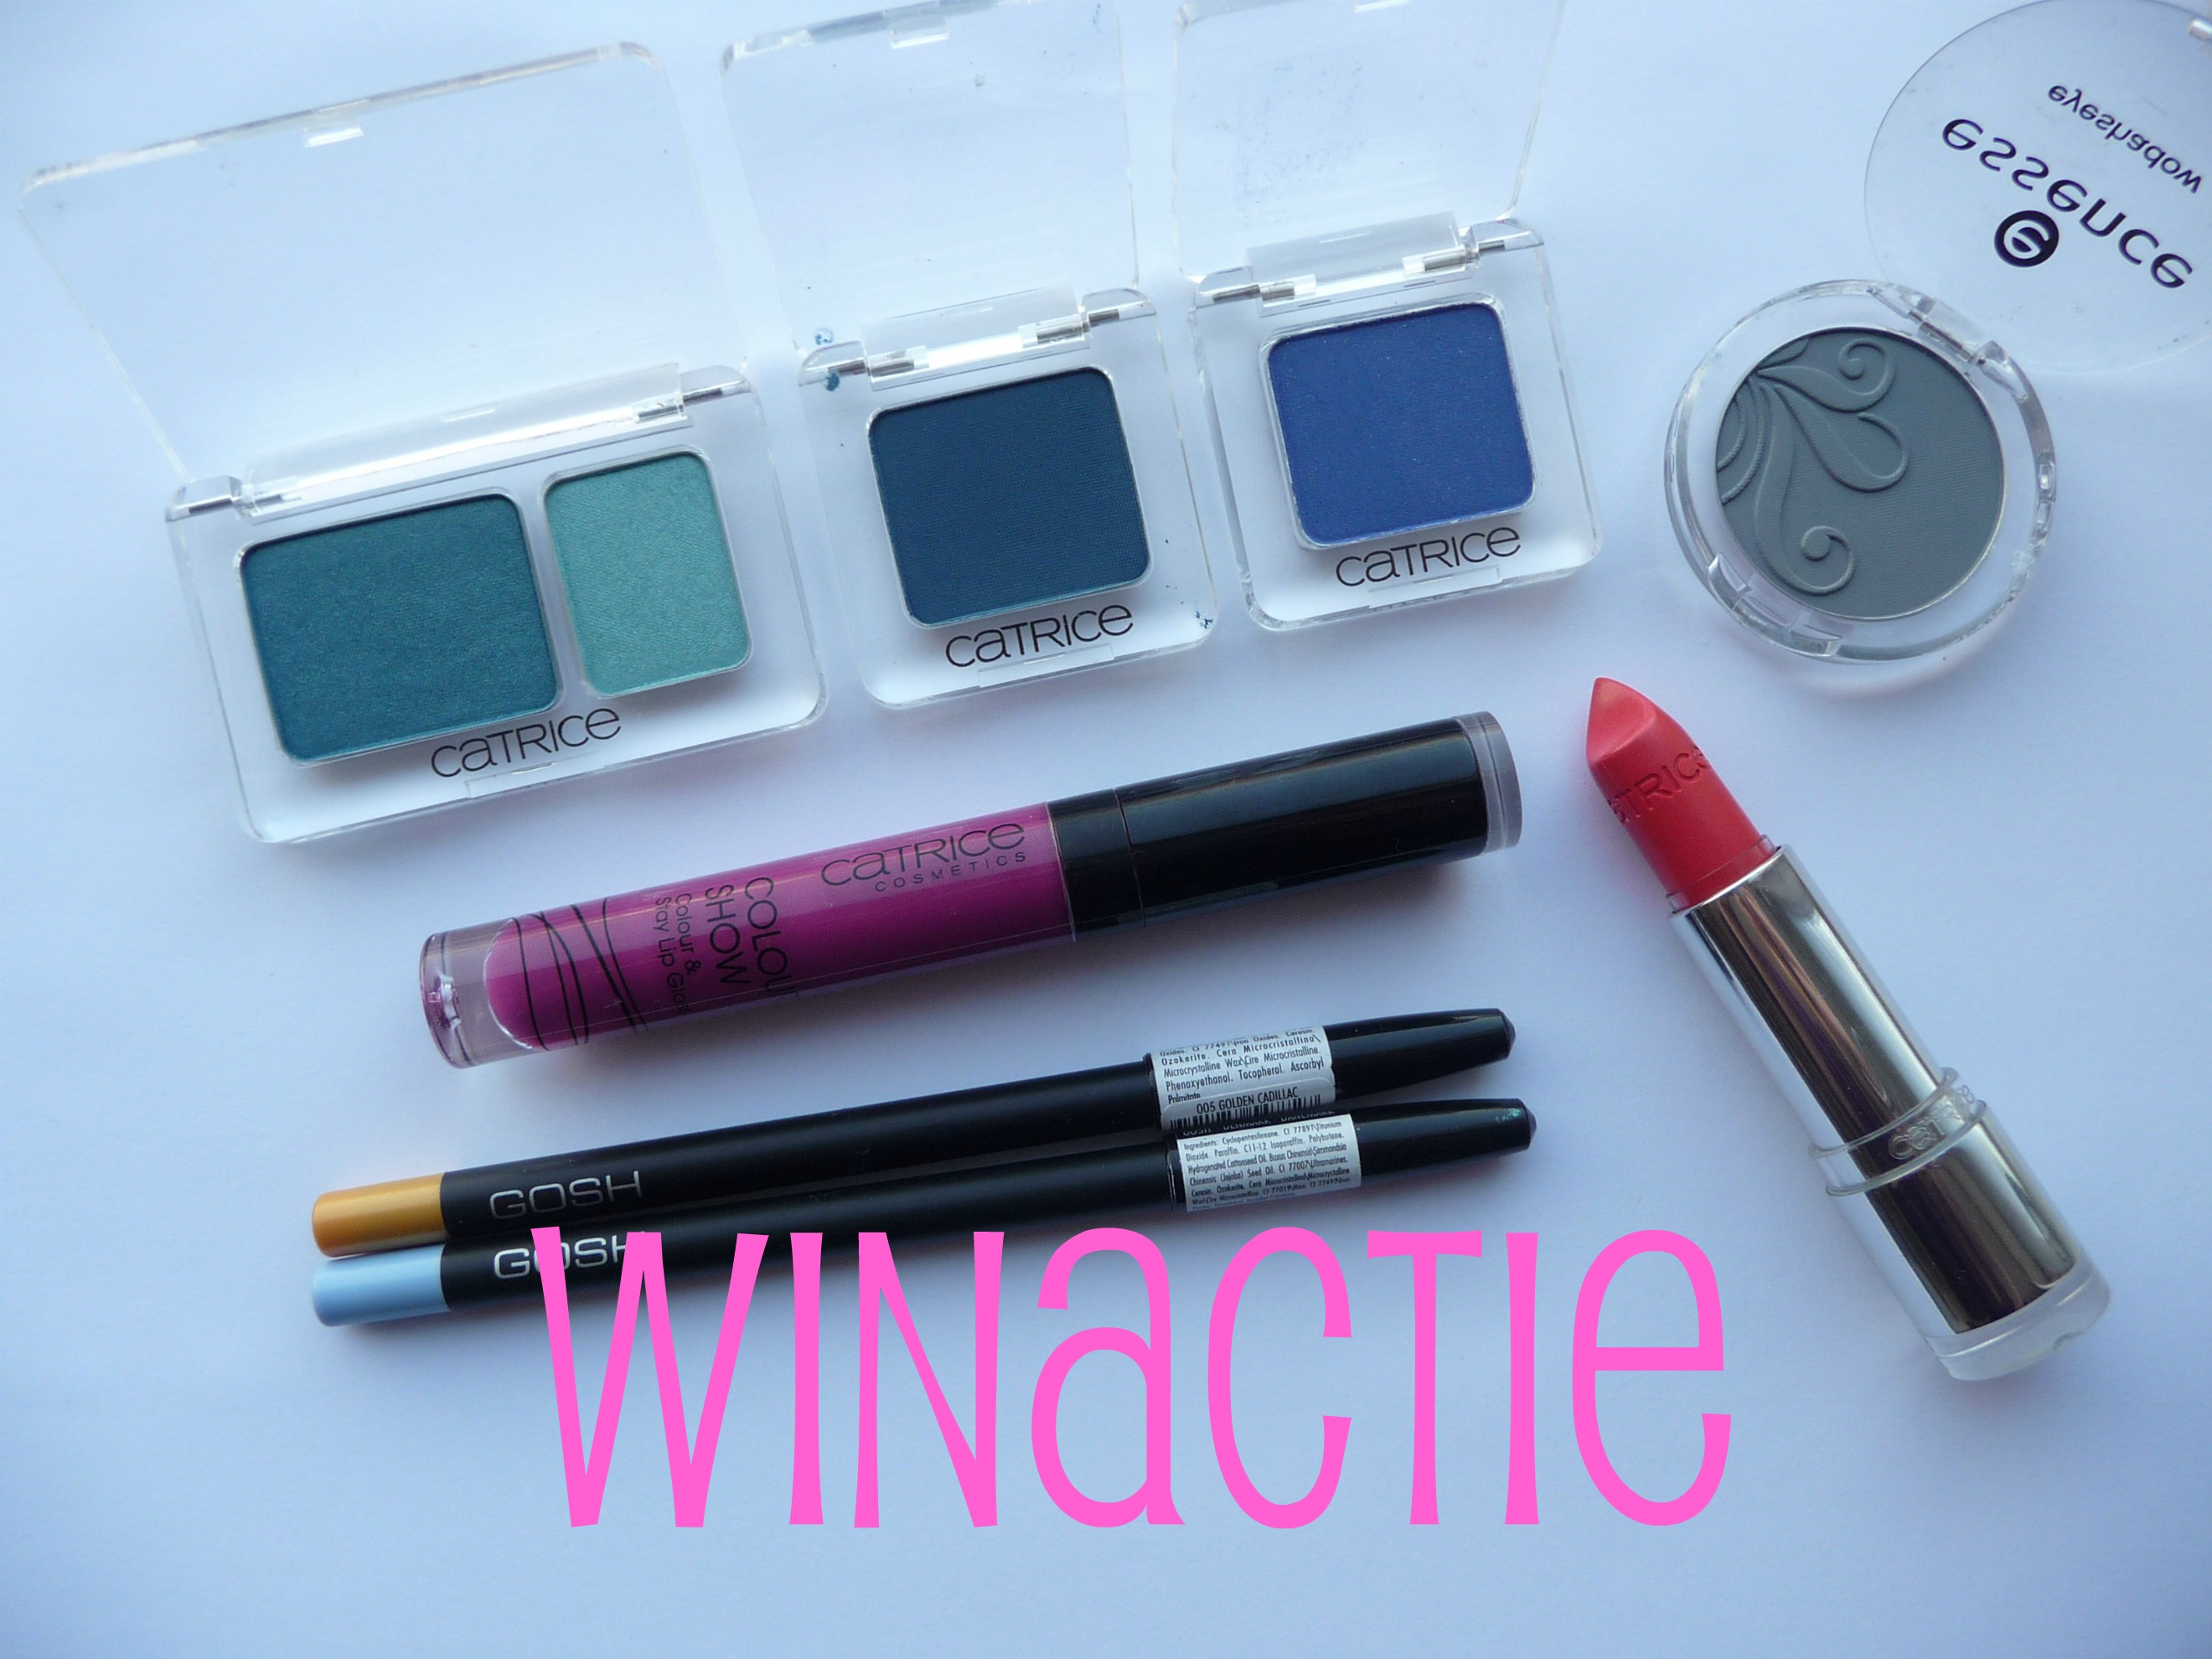 Reminder: winnen 2 make up pakketten t.w.v. € 31